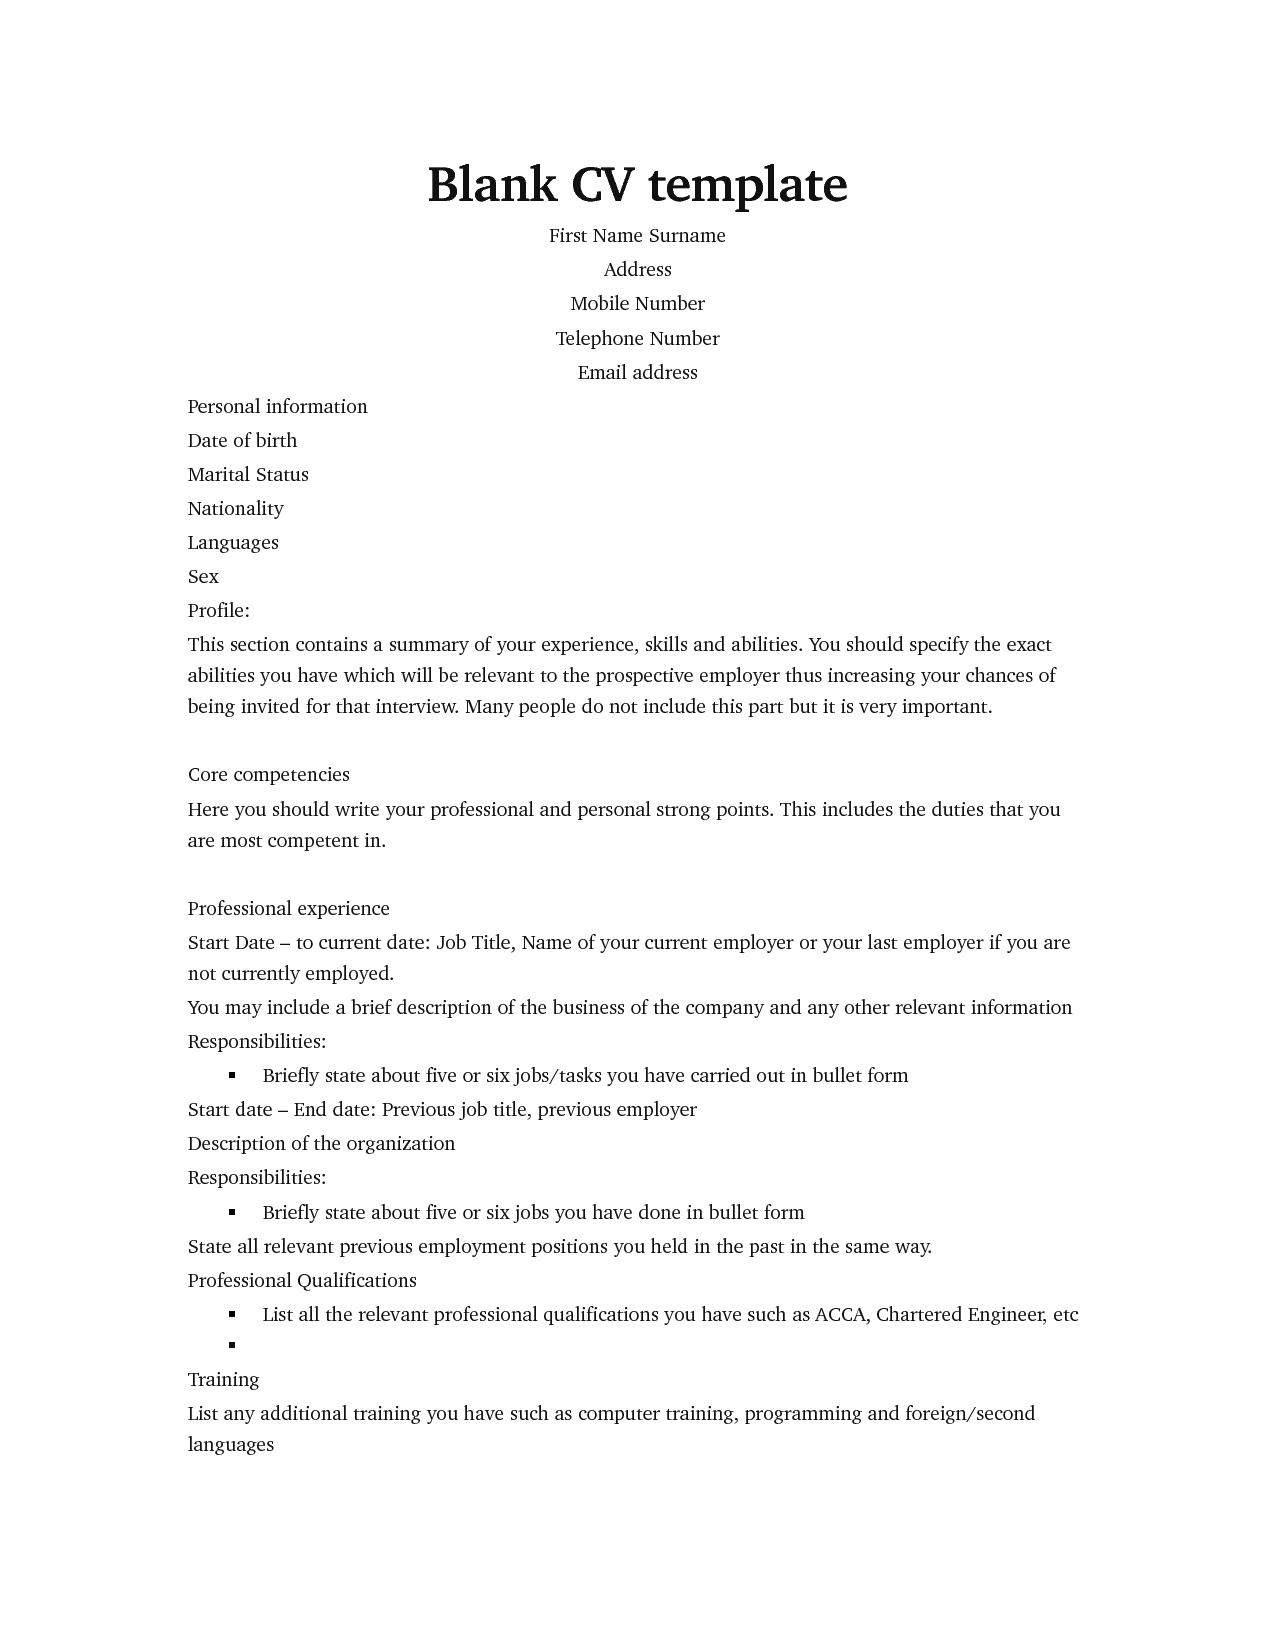 Professional Blank Cv Template For Job Seekers With Regard To Free Blank Cv Template Download